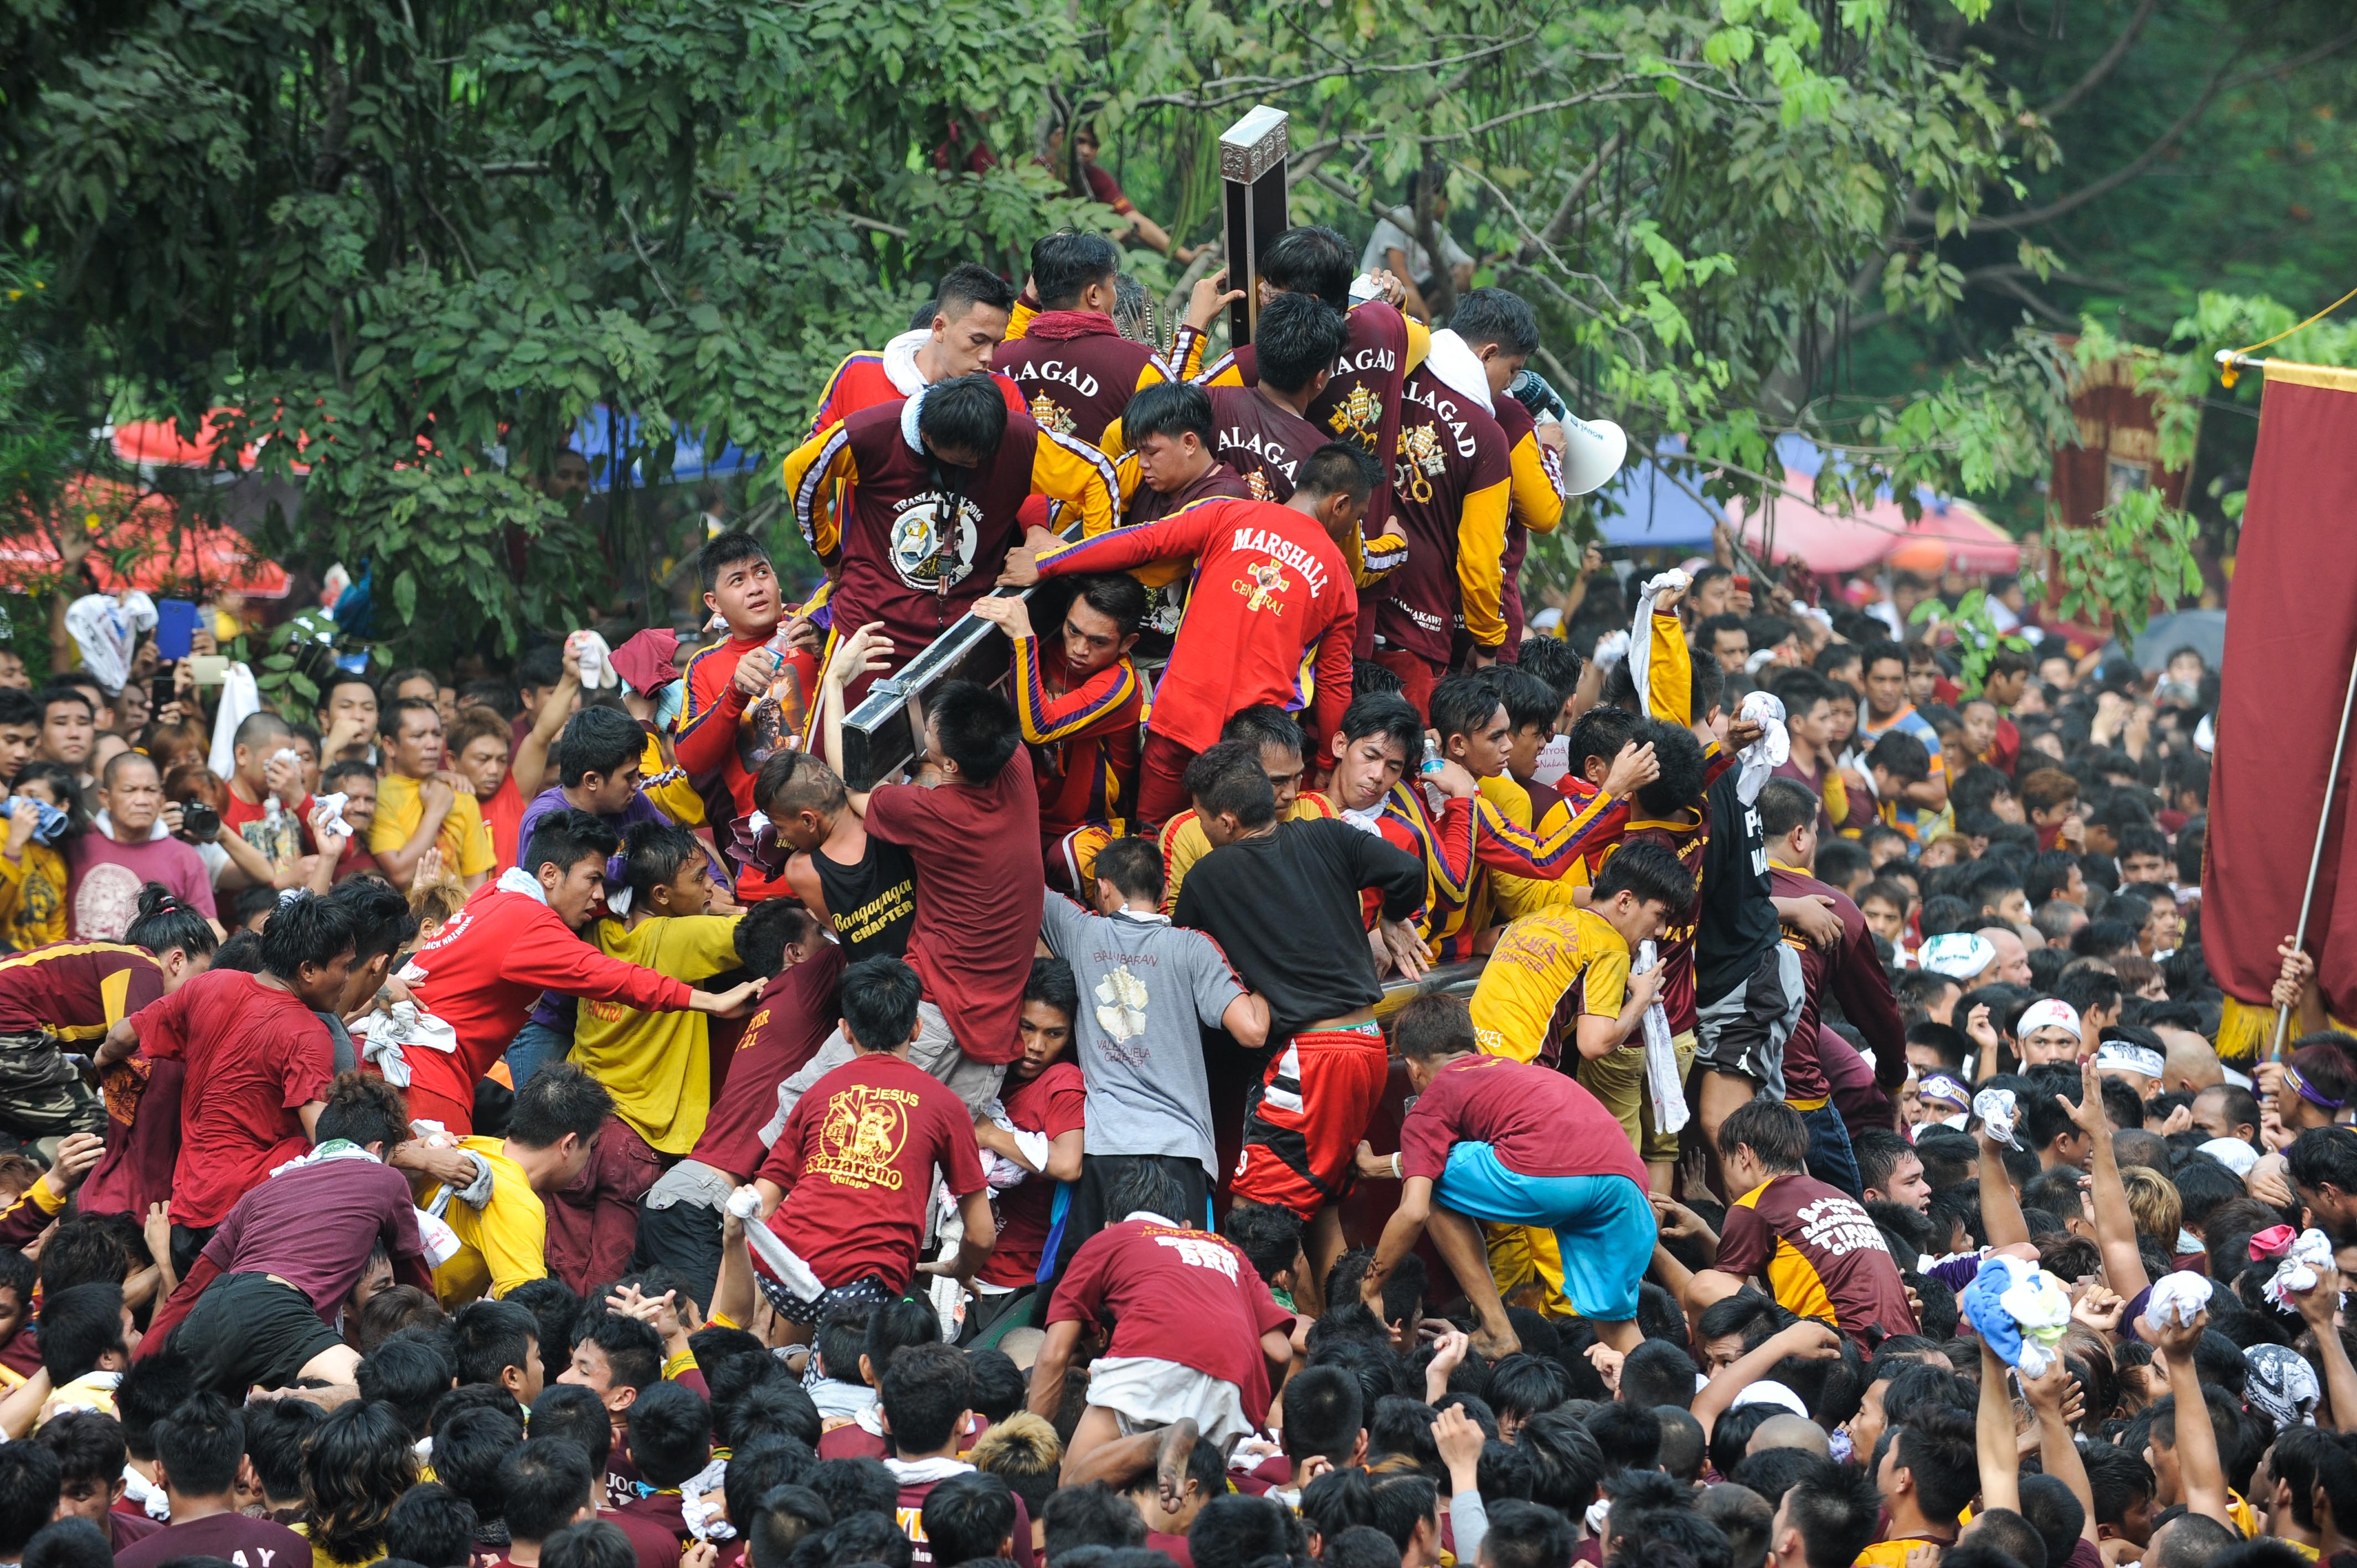 Devotees climb the carriage of the Black Nazarene during the Feast of the Black Nazarene on Jan. 9, 2016, in Manila